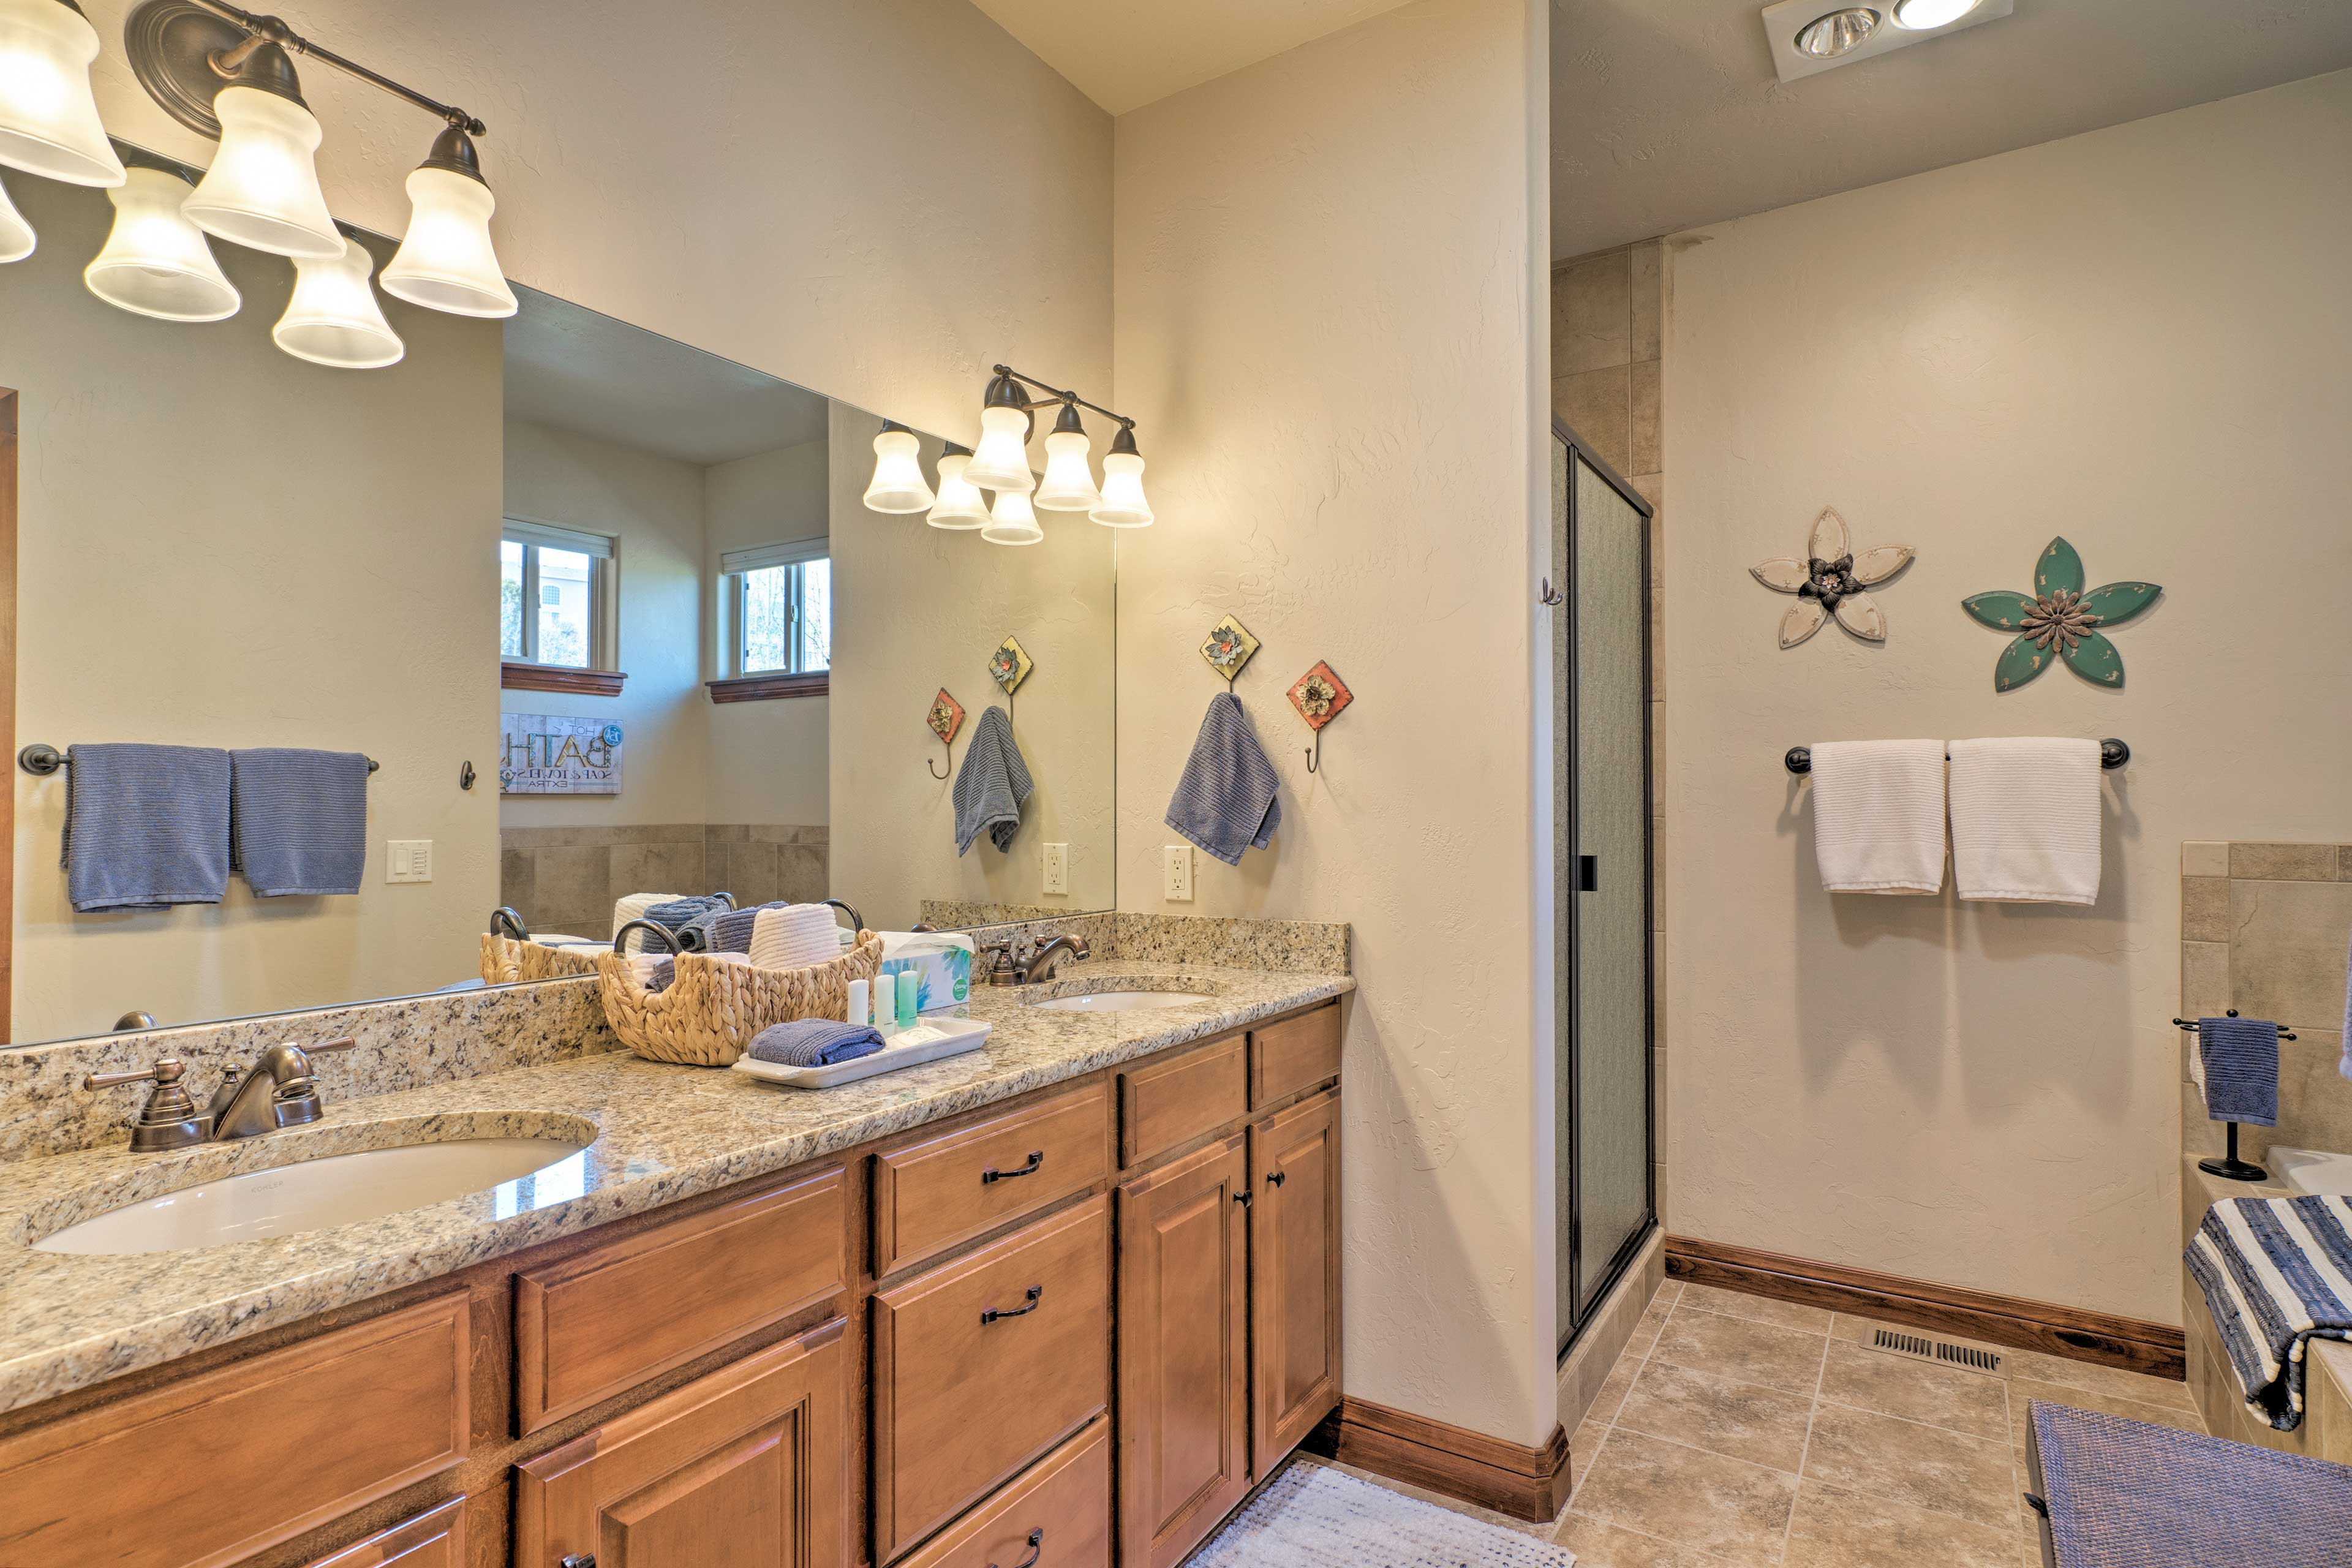 The master's en-suite bath features a dual-sink vanity, tub, and walk-in shower.